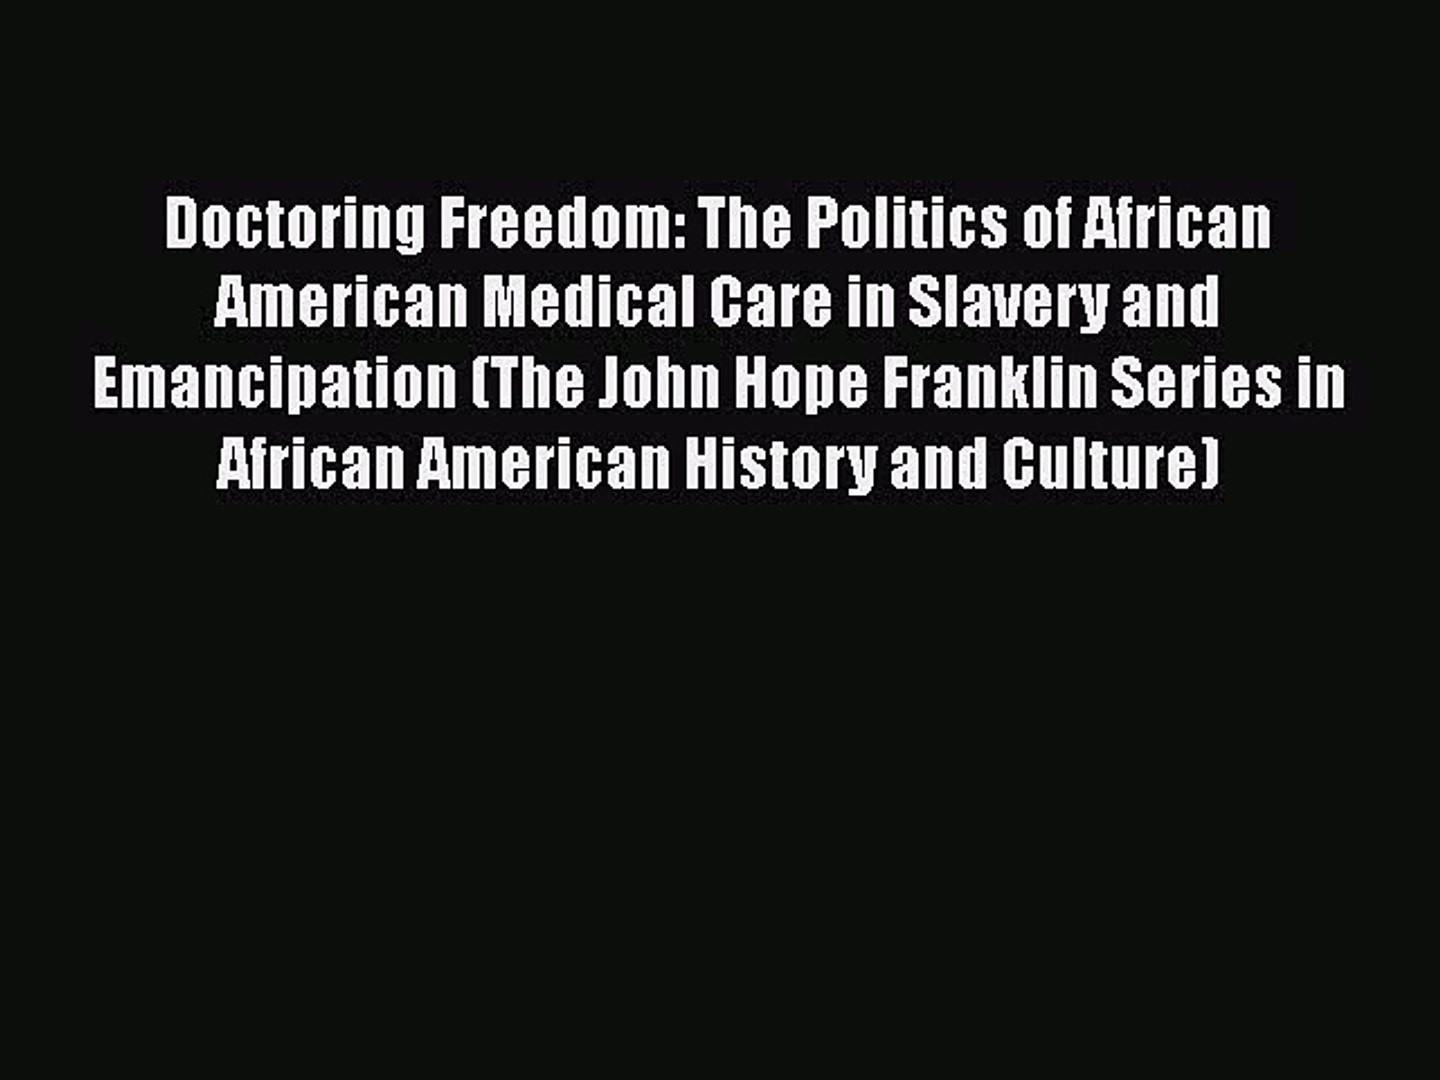 Download Doctoring Freedom: The Politics of African American Medical Care in Slavery and Emancipatio